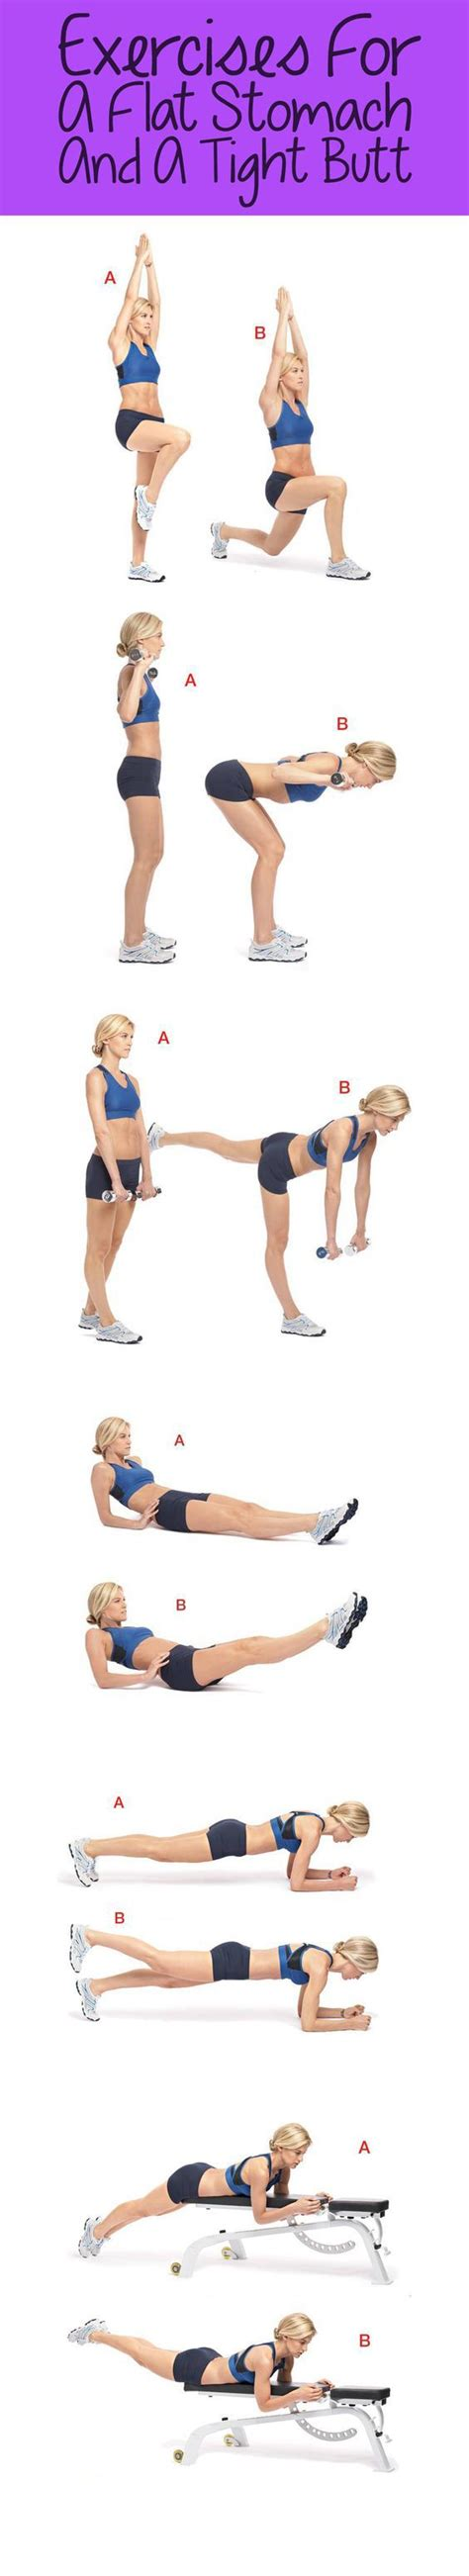 best 25 flat stomach ideas on flat stomach workouts belly excersises and stomach